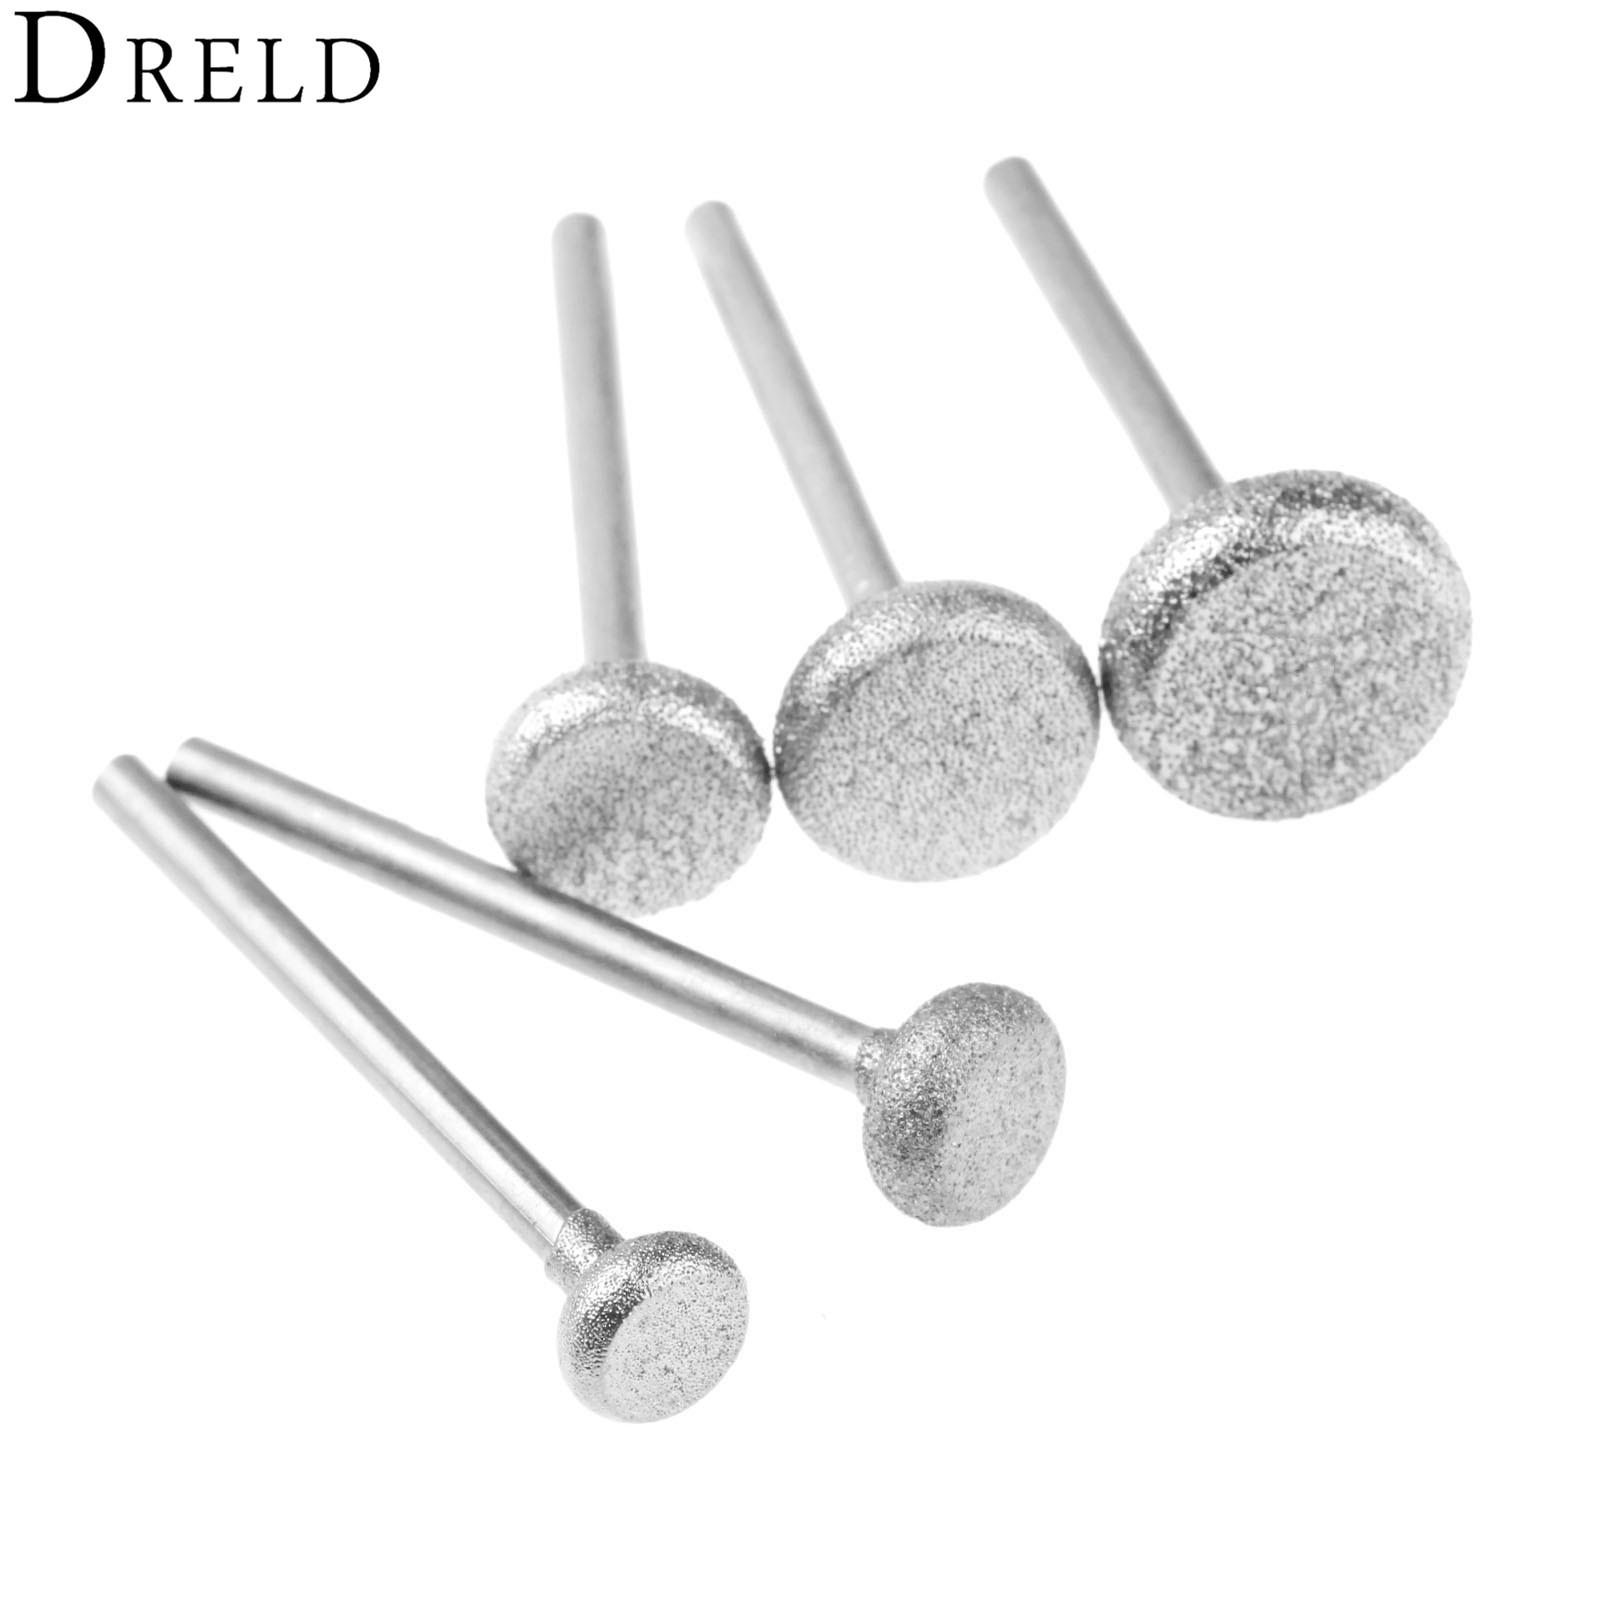 DRELD 5Pcs/set Diamond Grinding Head 3mm Shank Abrasive Polishing Grinding Nail Bit Jade Stone Metal Cutting Carving Drill Burrs